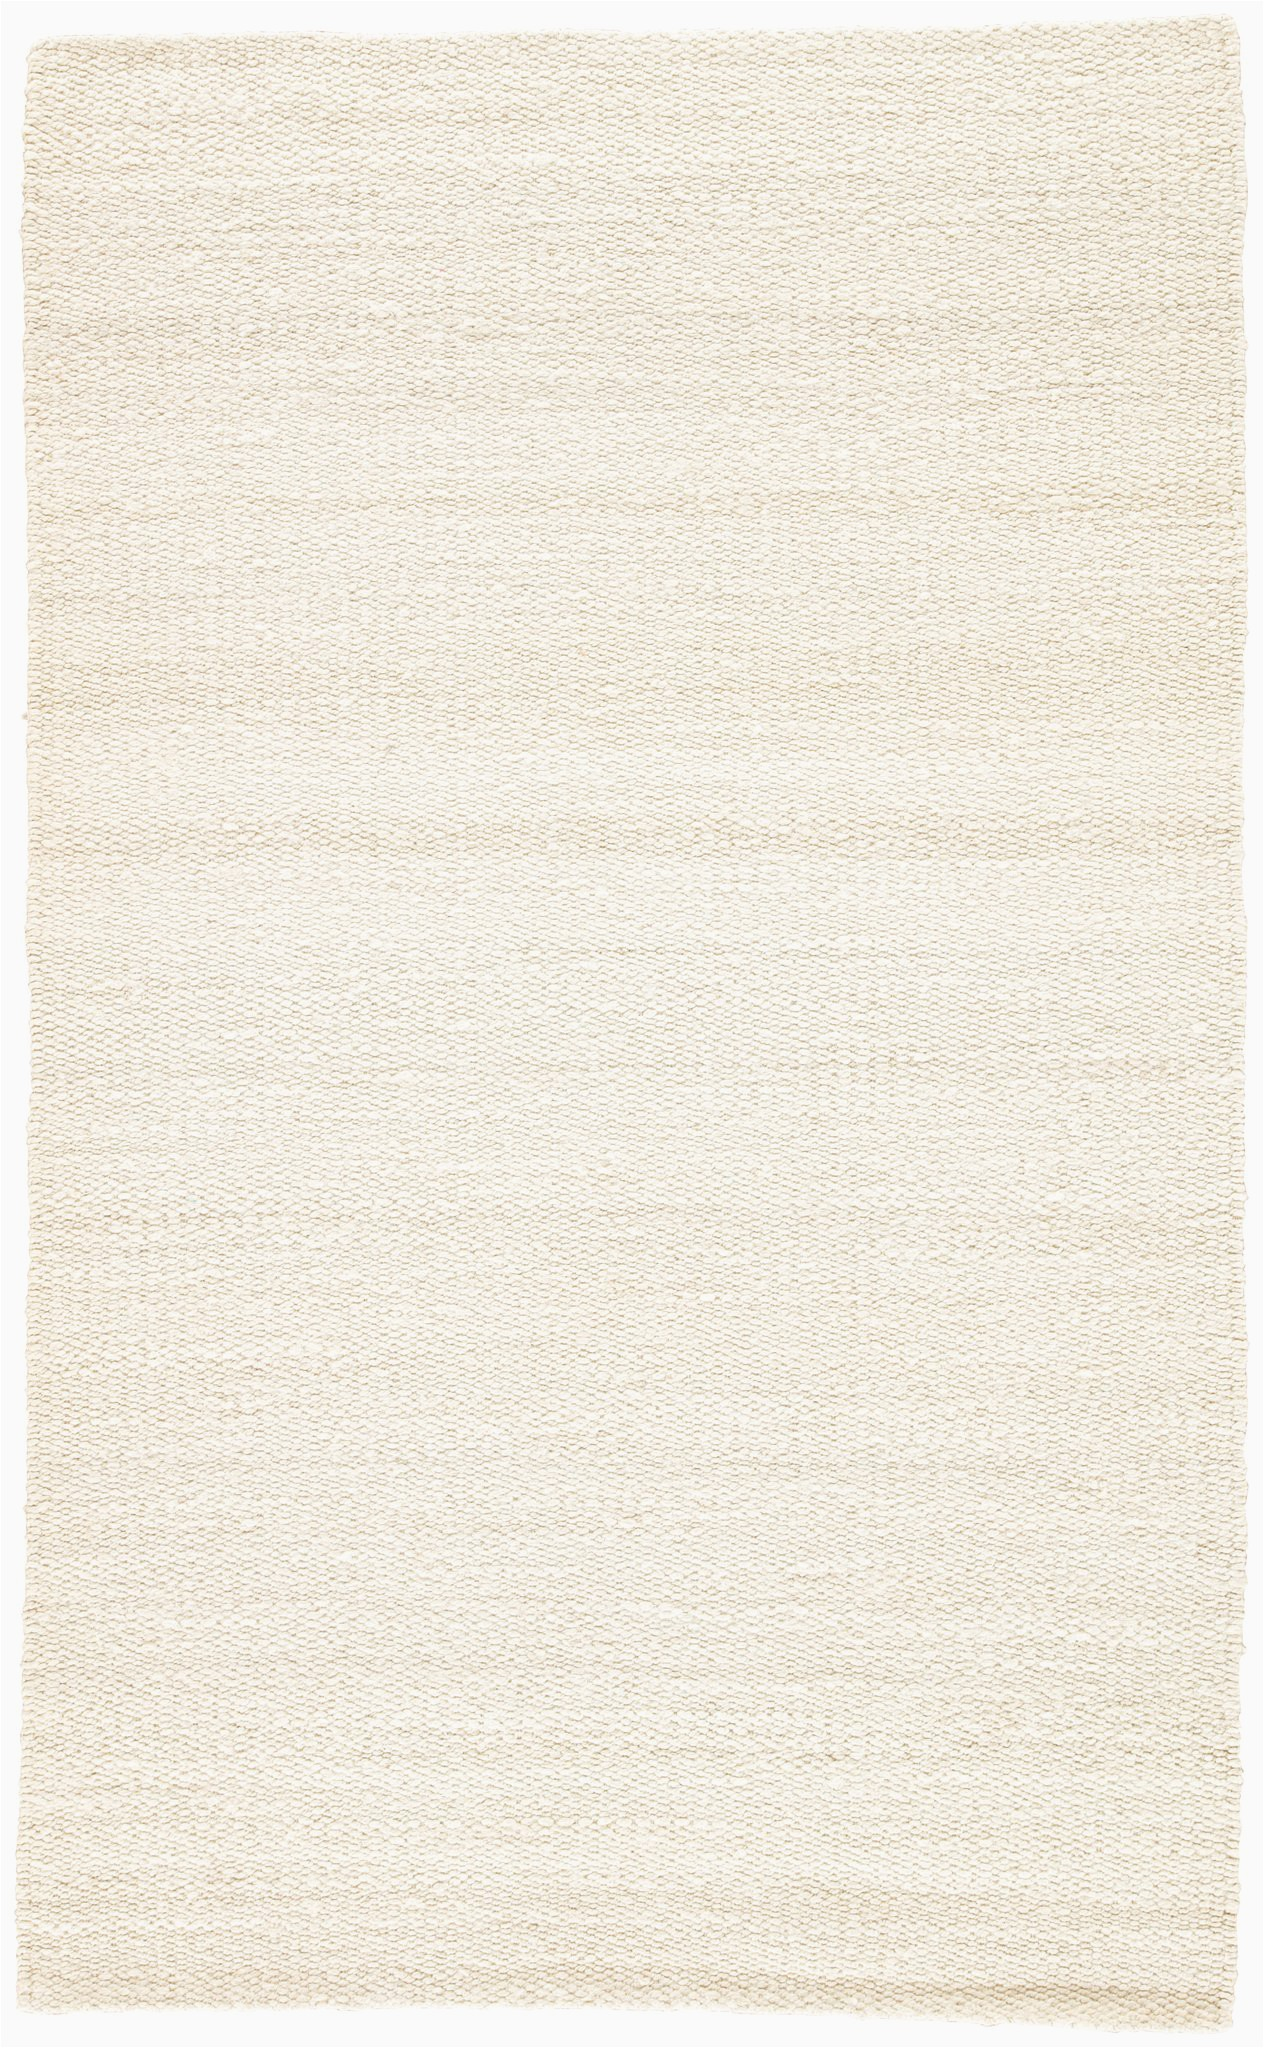 White solid Loomed area Rug Hutton Natural solid White area Rug – Burke Decor